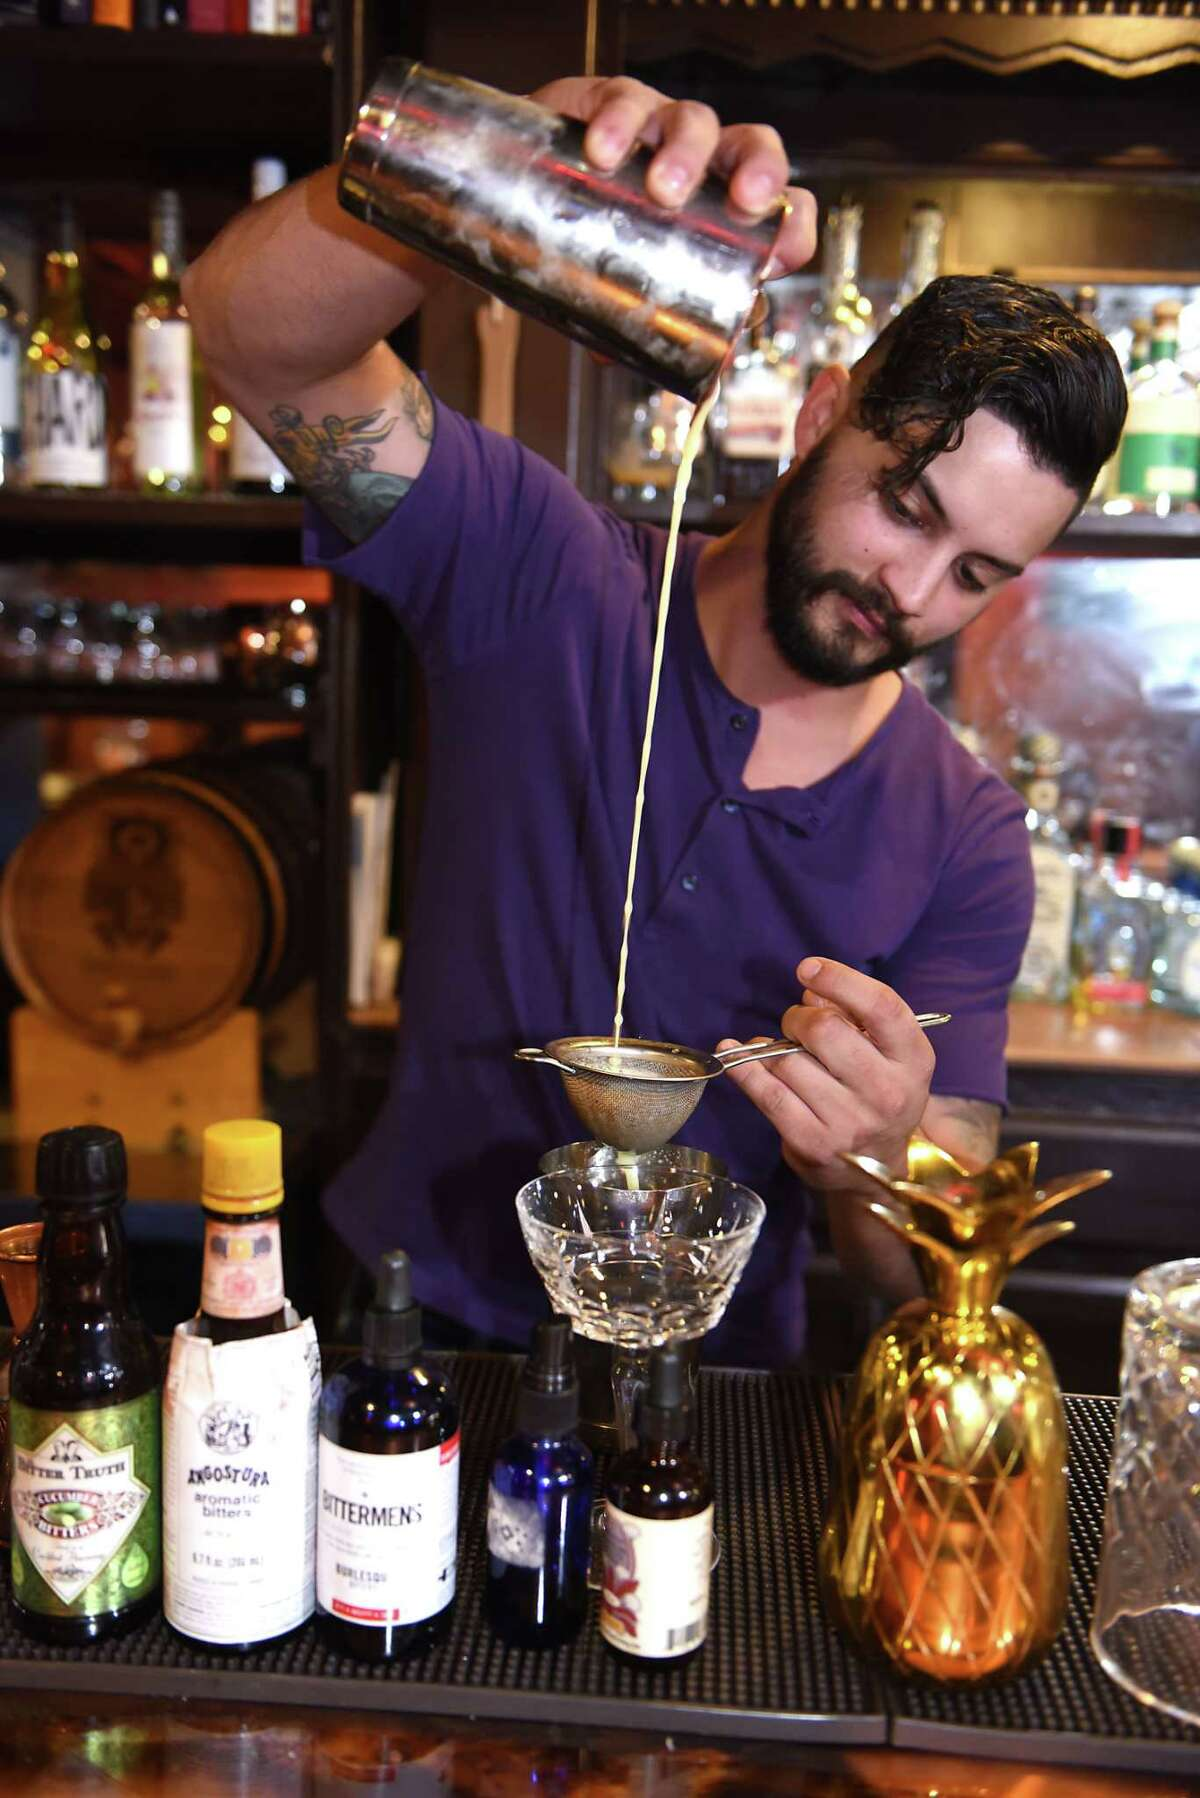 """Bartender George Fiorini makes a cocktail called """"The Jay #2"""" at Savoy Taproom on Thursday, Aug. 17, 2017 in Albany, N.Y. The drink includes 1 oz Mezcal, 1 oz Midori, 3/4 oz sage aquafaba, 3/4 oz lime juice and 1/4 oz cold pressed ginger. (Lori Van Buren / Times Union)"""